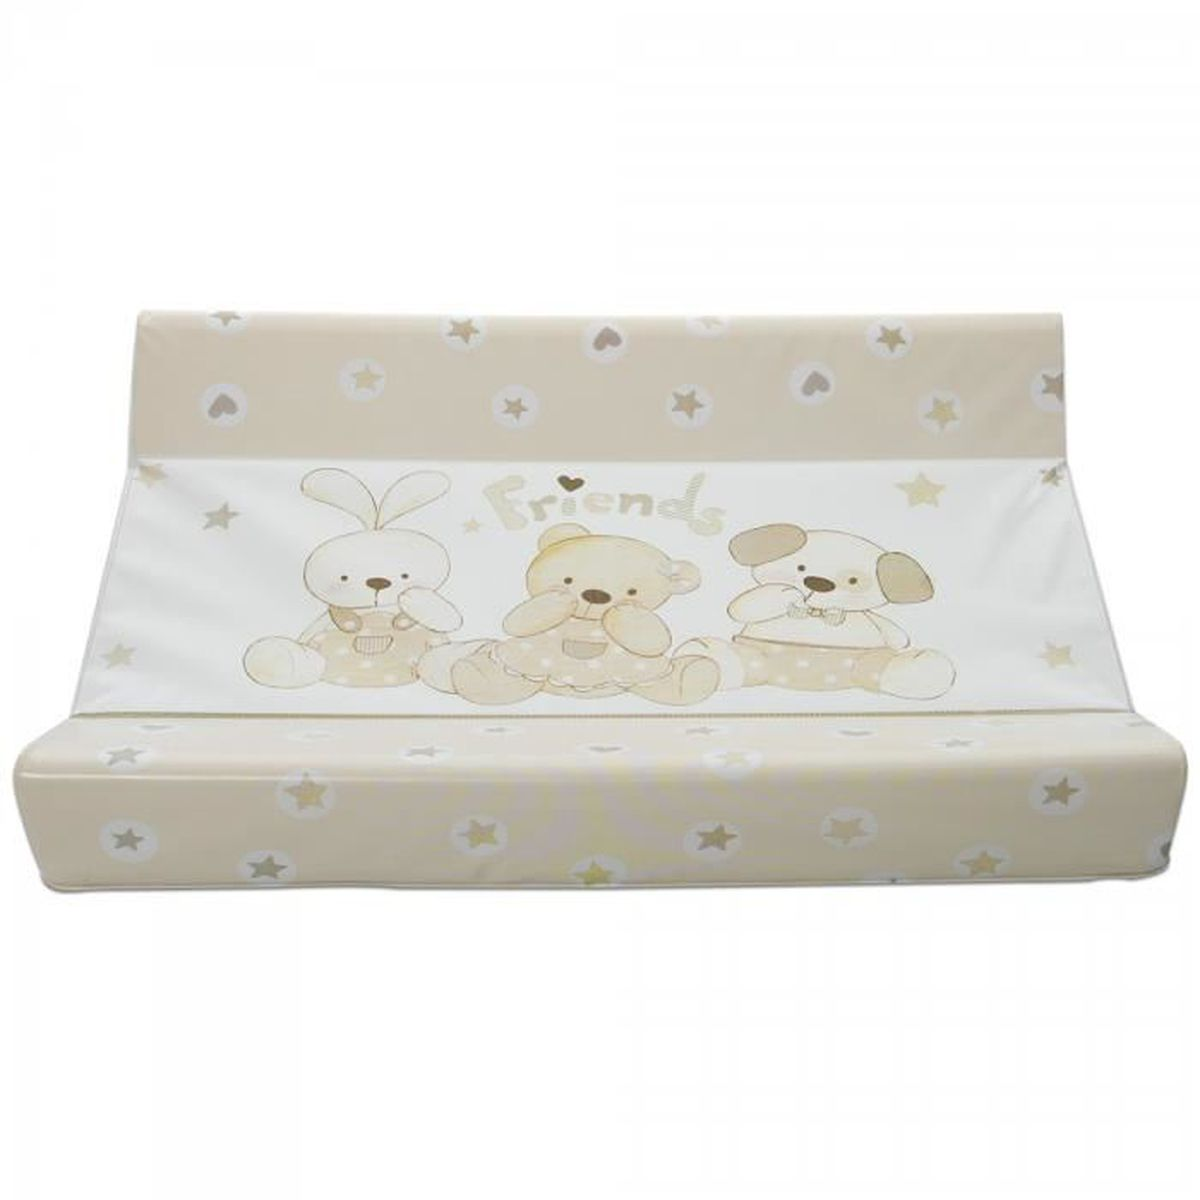 matelas langer pour lit nounours chien lapin achat. Black Bedroom Furniture Sets. Home Design Ideas